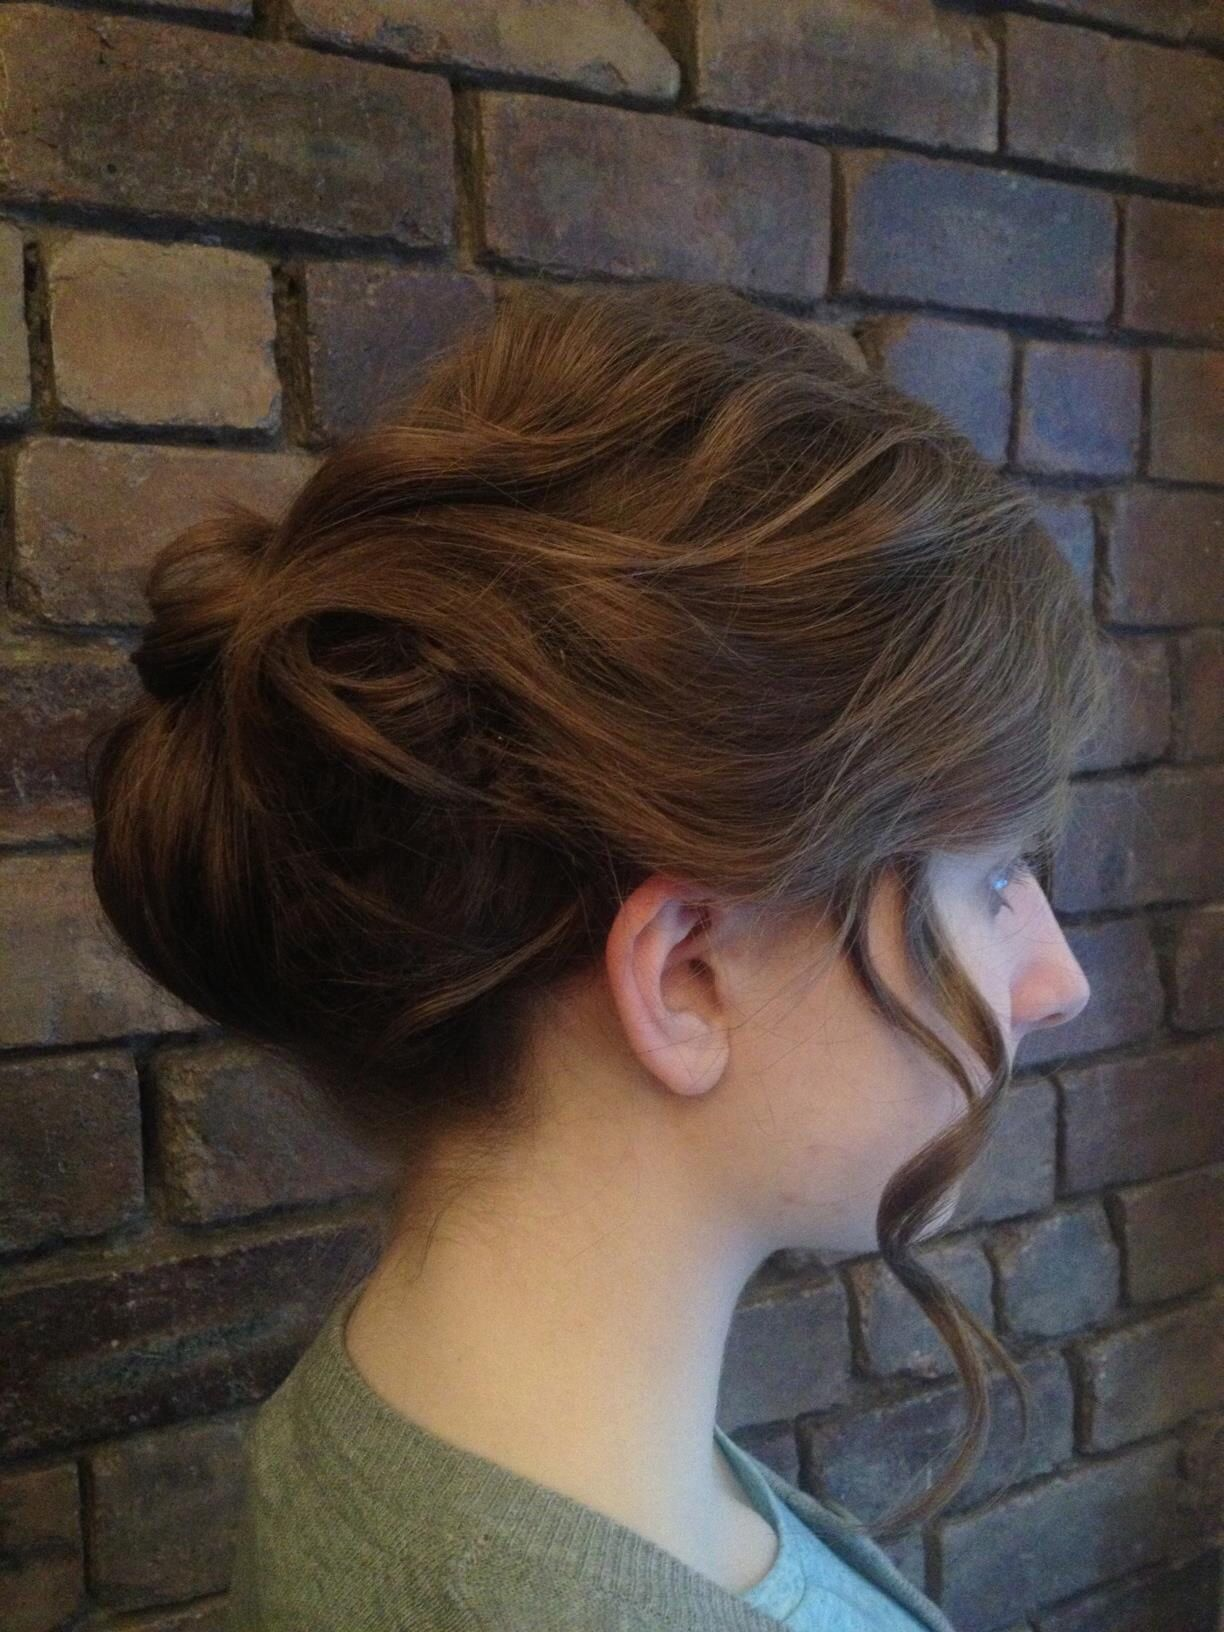 Hair and make up by Miss Barton's salon  #glasgow #westend #hairupdo #hair #colour #prom #bridal #vintage